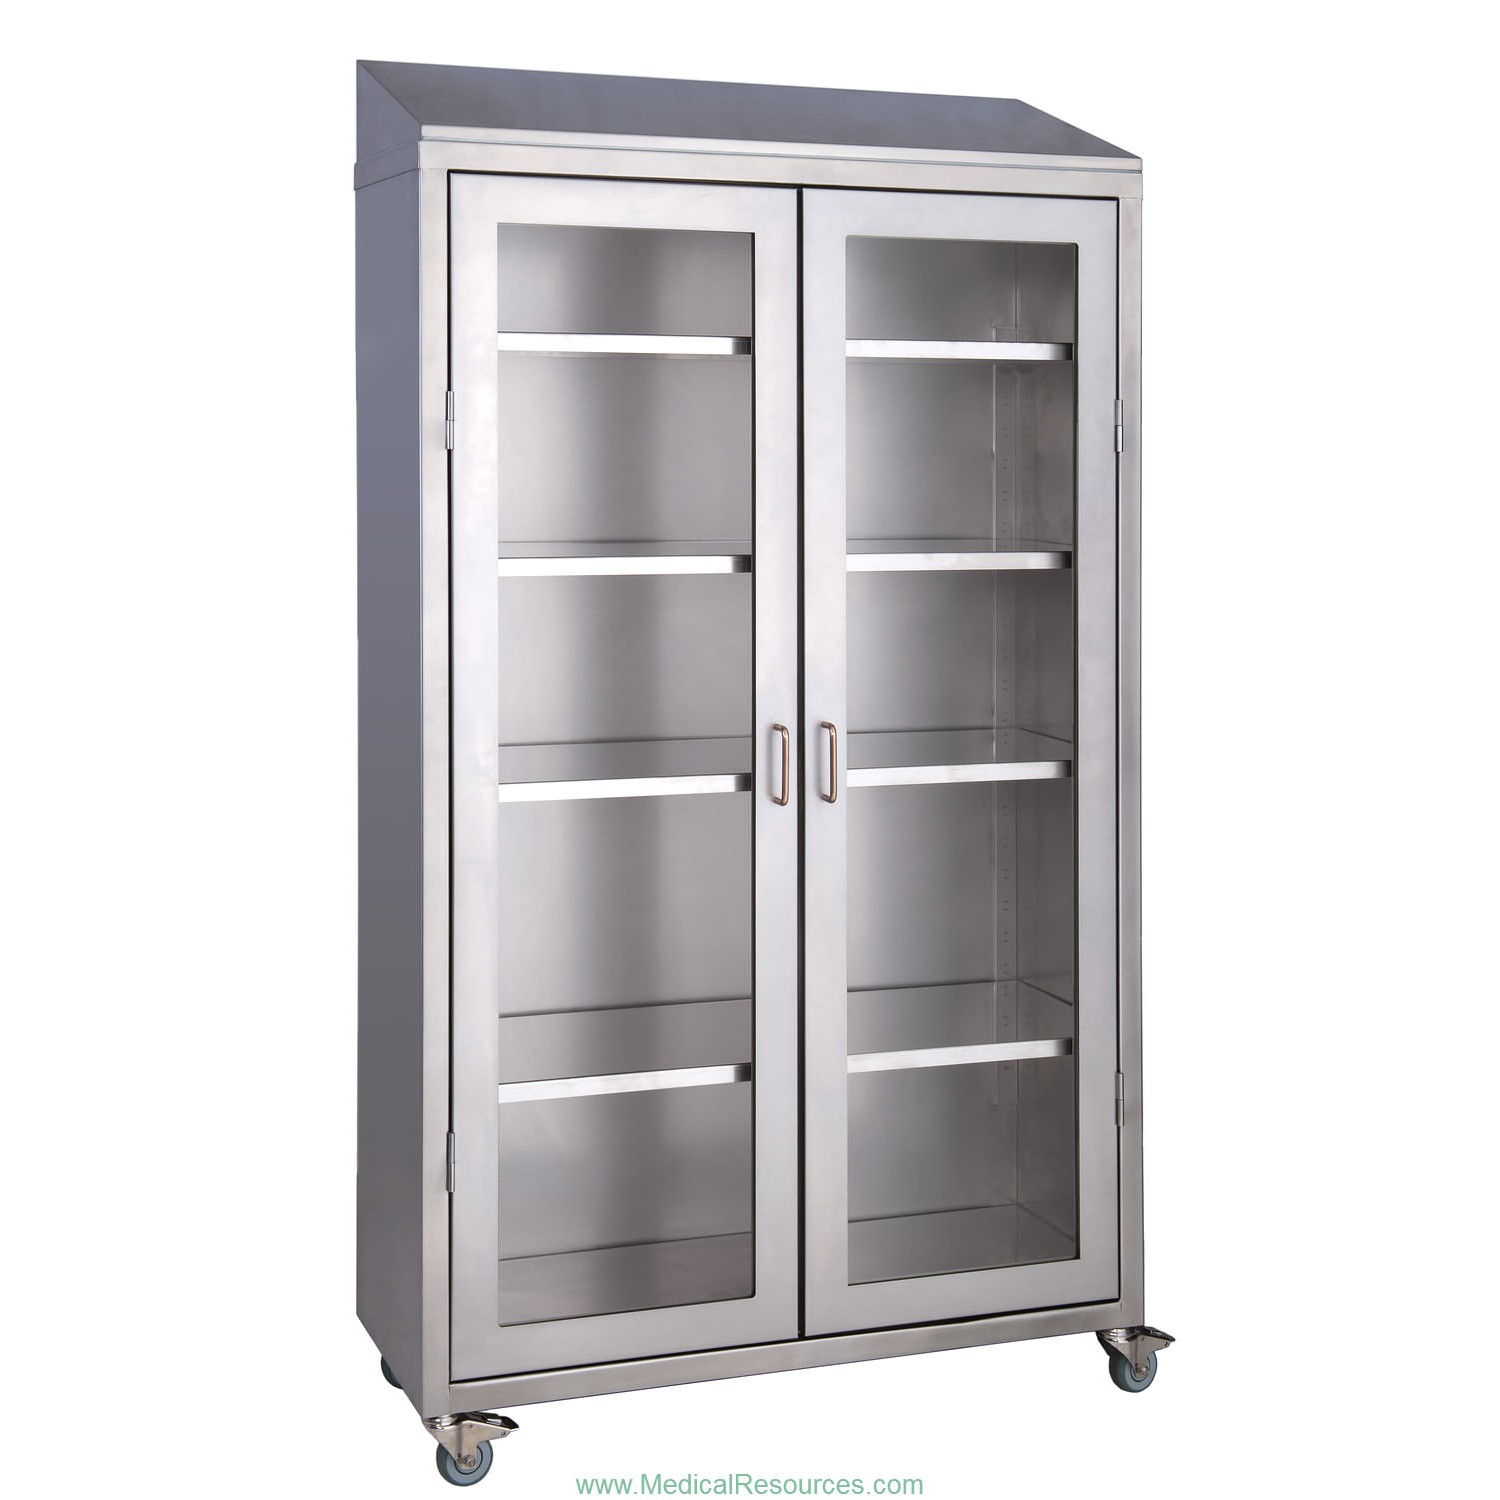 Stainless Steel Kitchen Cabinet Puchong: Medwurx_mobile_stainless_steel_instrument_supply_cabinets